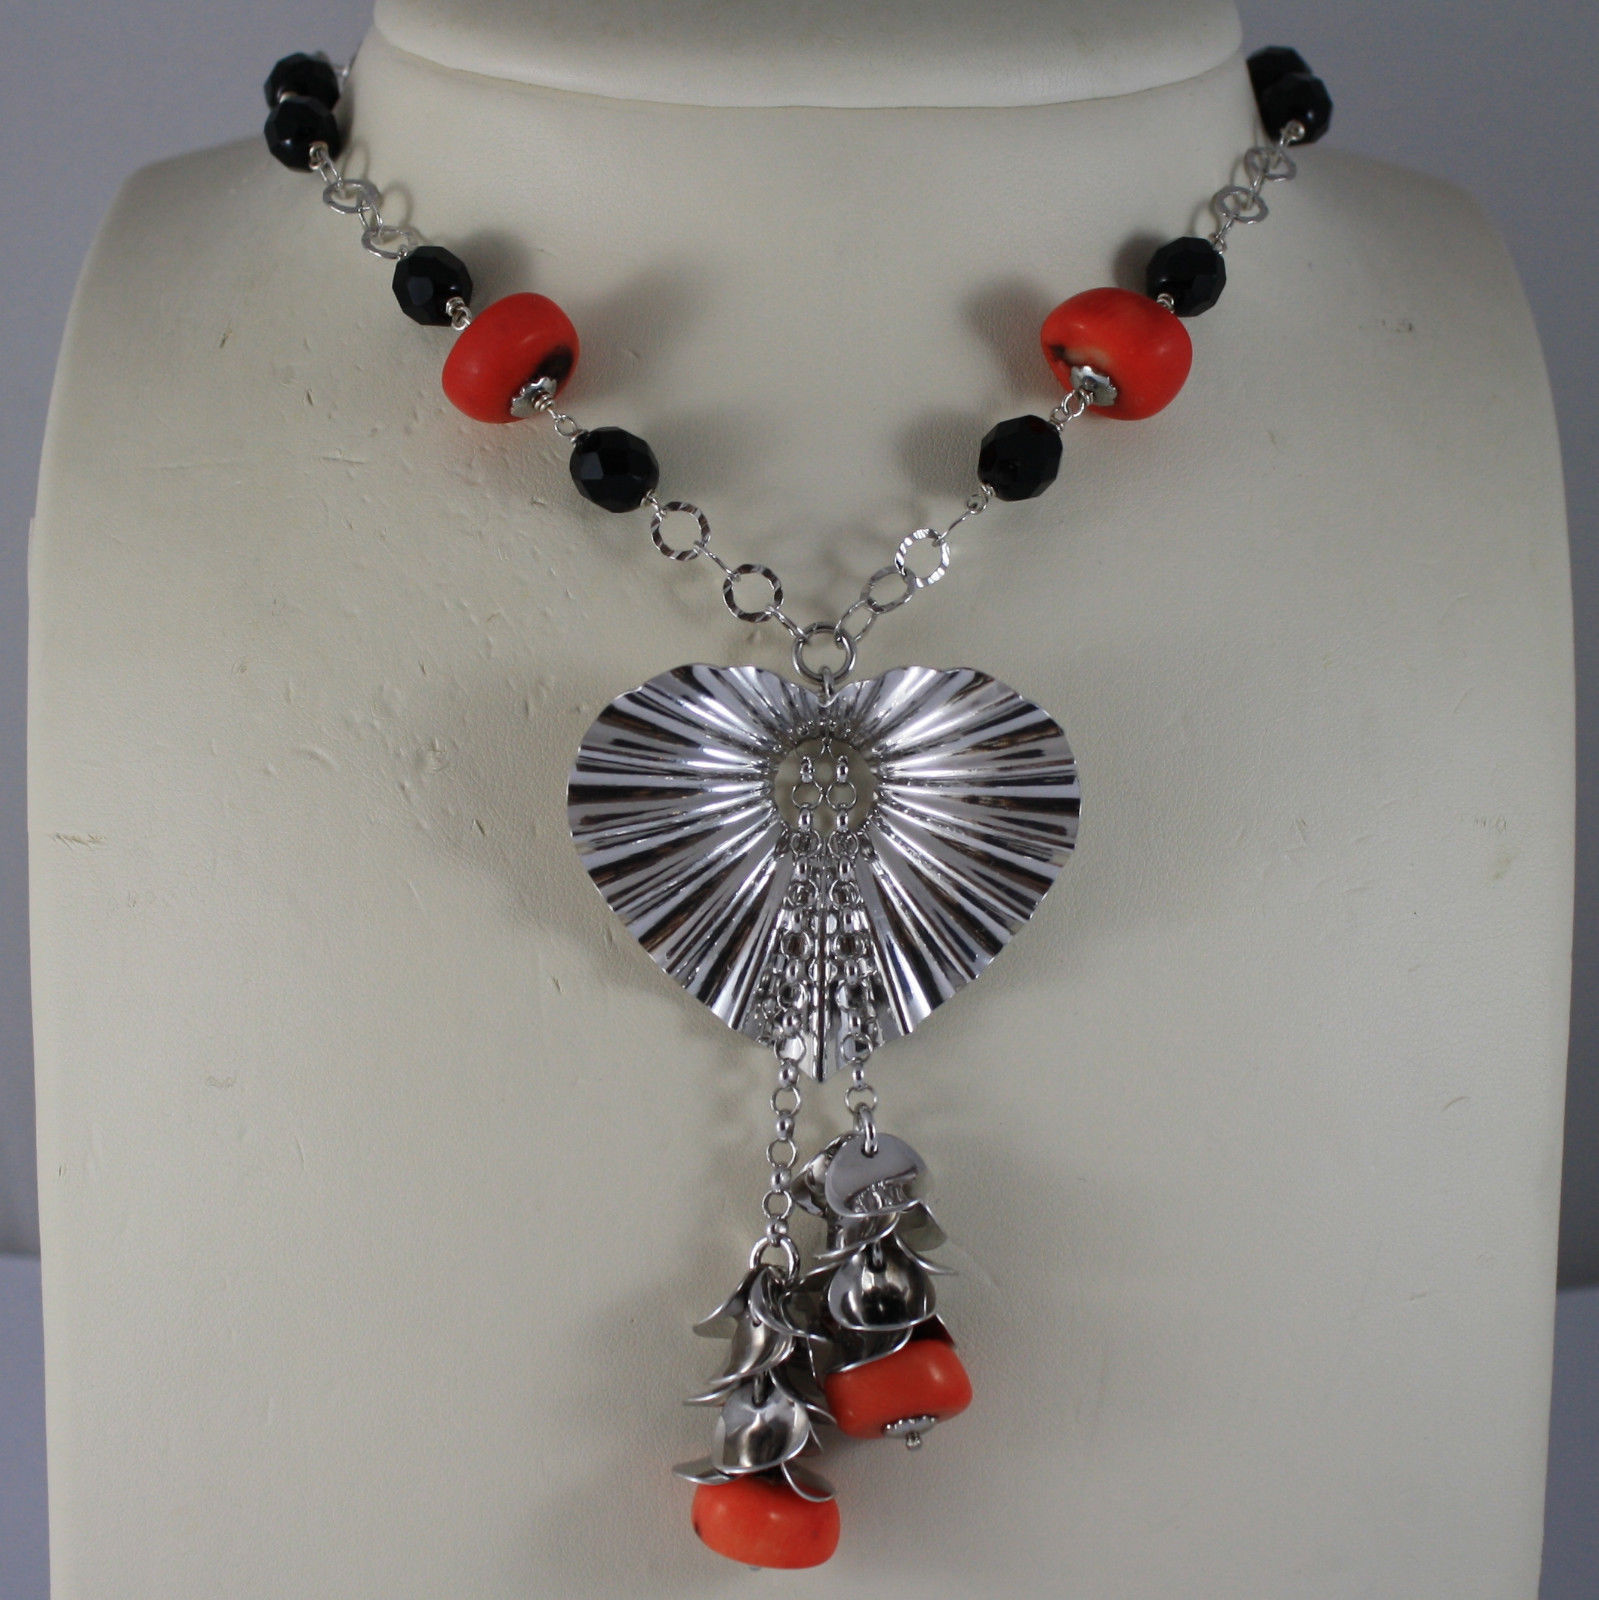 .925 SILVER RHODIUM NECKLACE WITH BLACK ONYX, CORAL BAMBOO AND HEART PENDANT